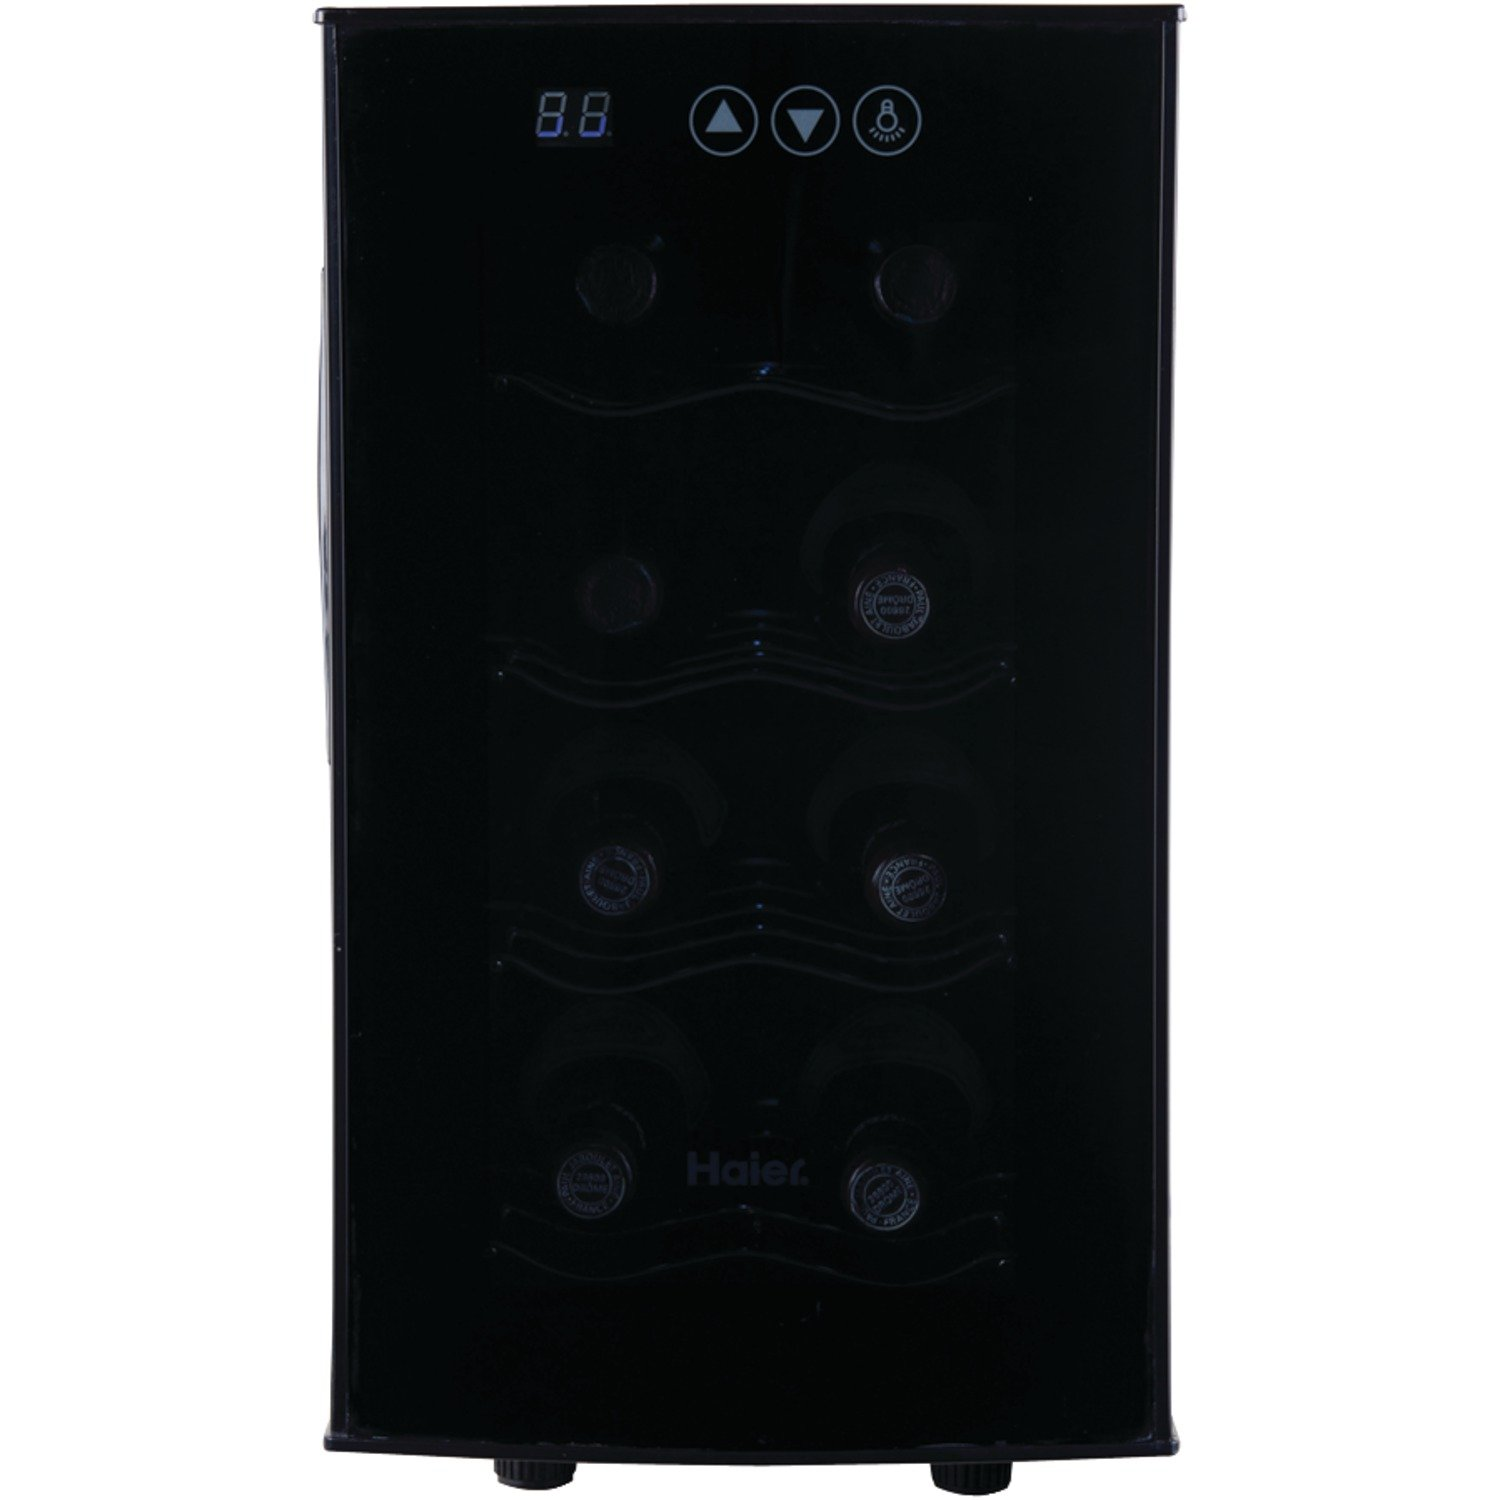 Haier Wine Cooler Reviews 2018 Our Top 5 Picks The